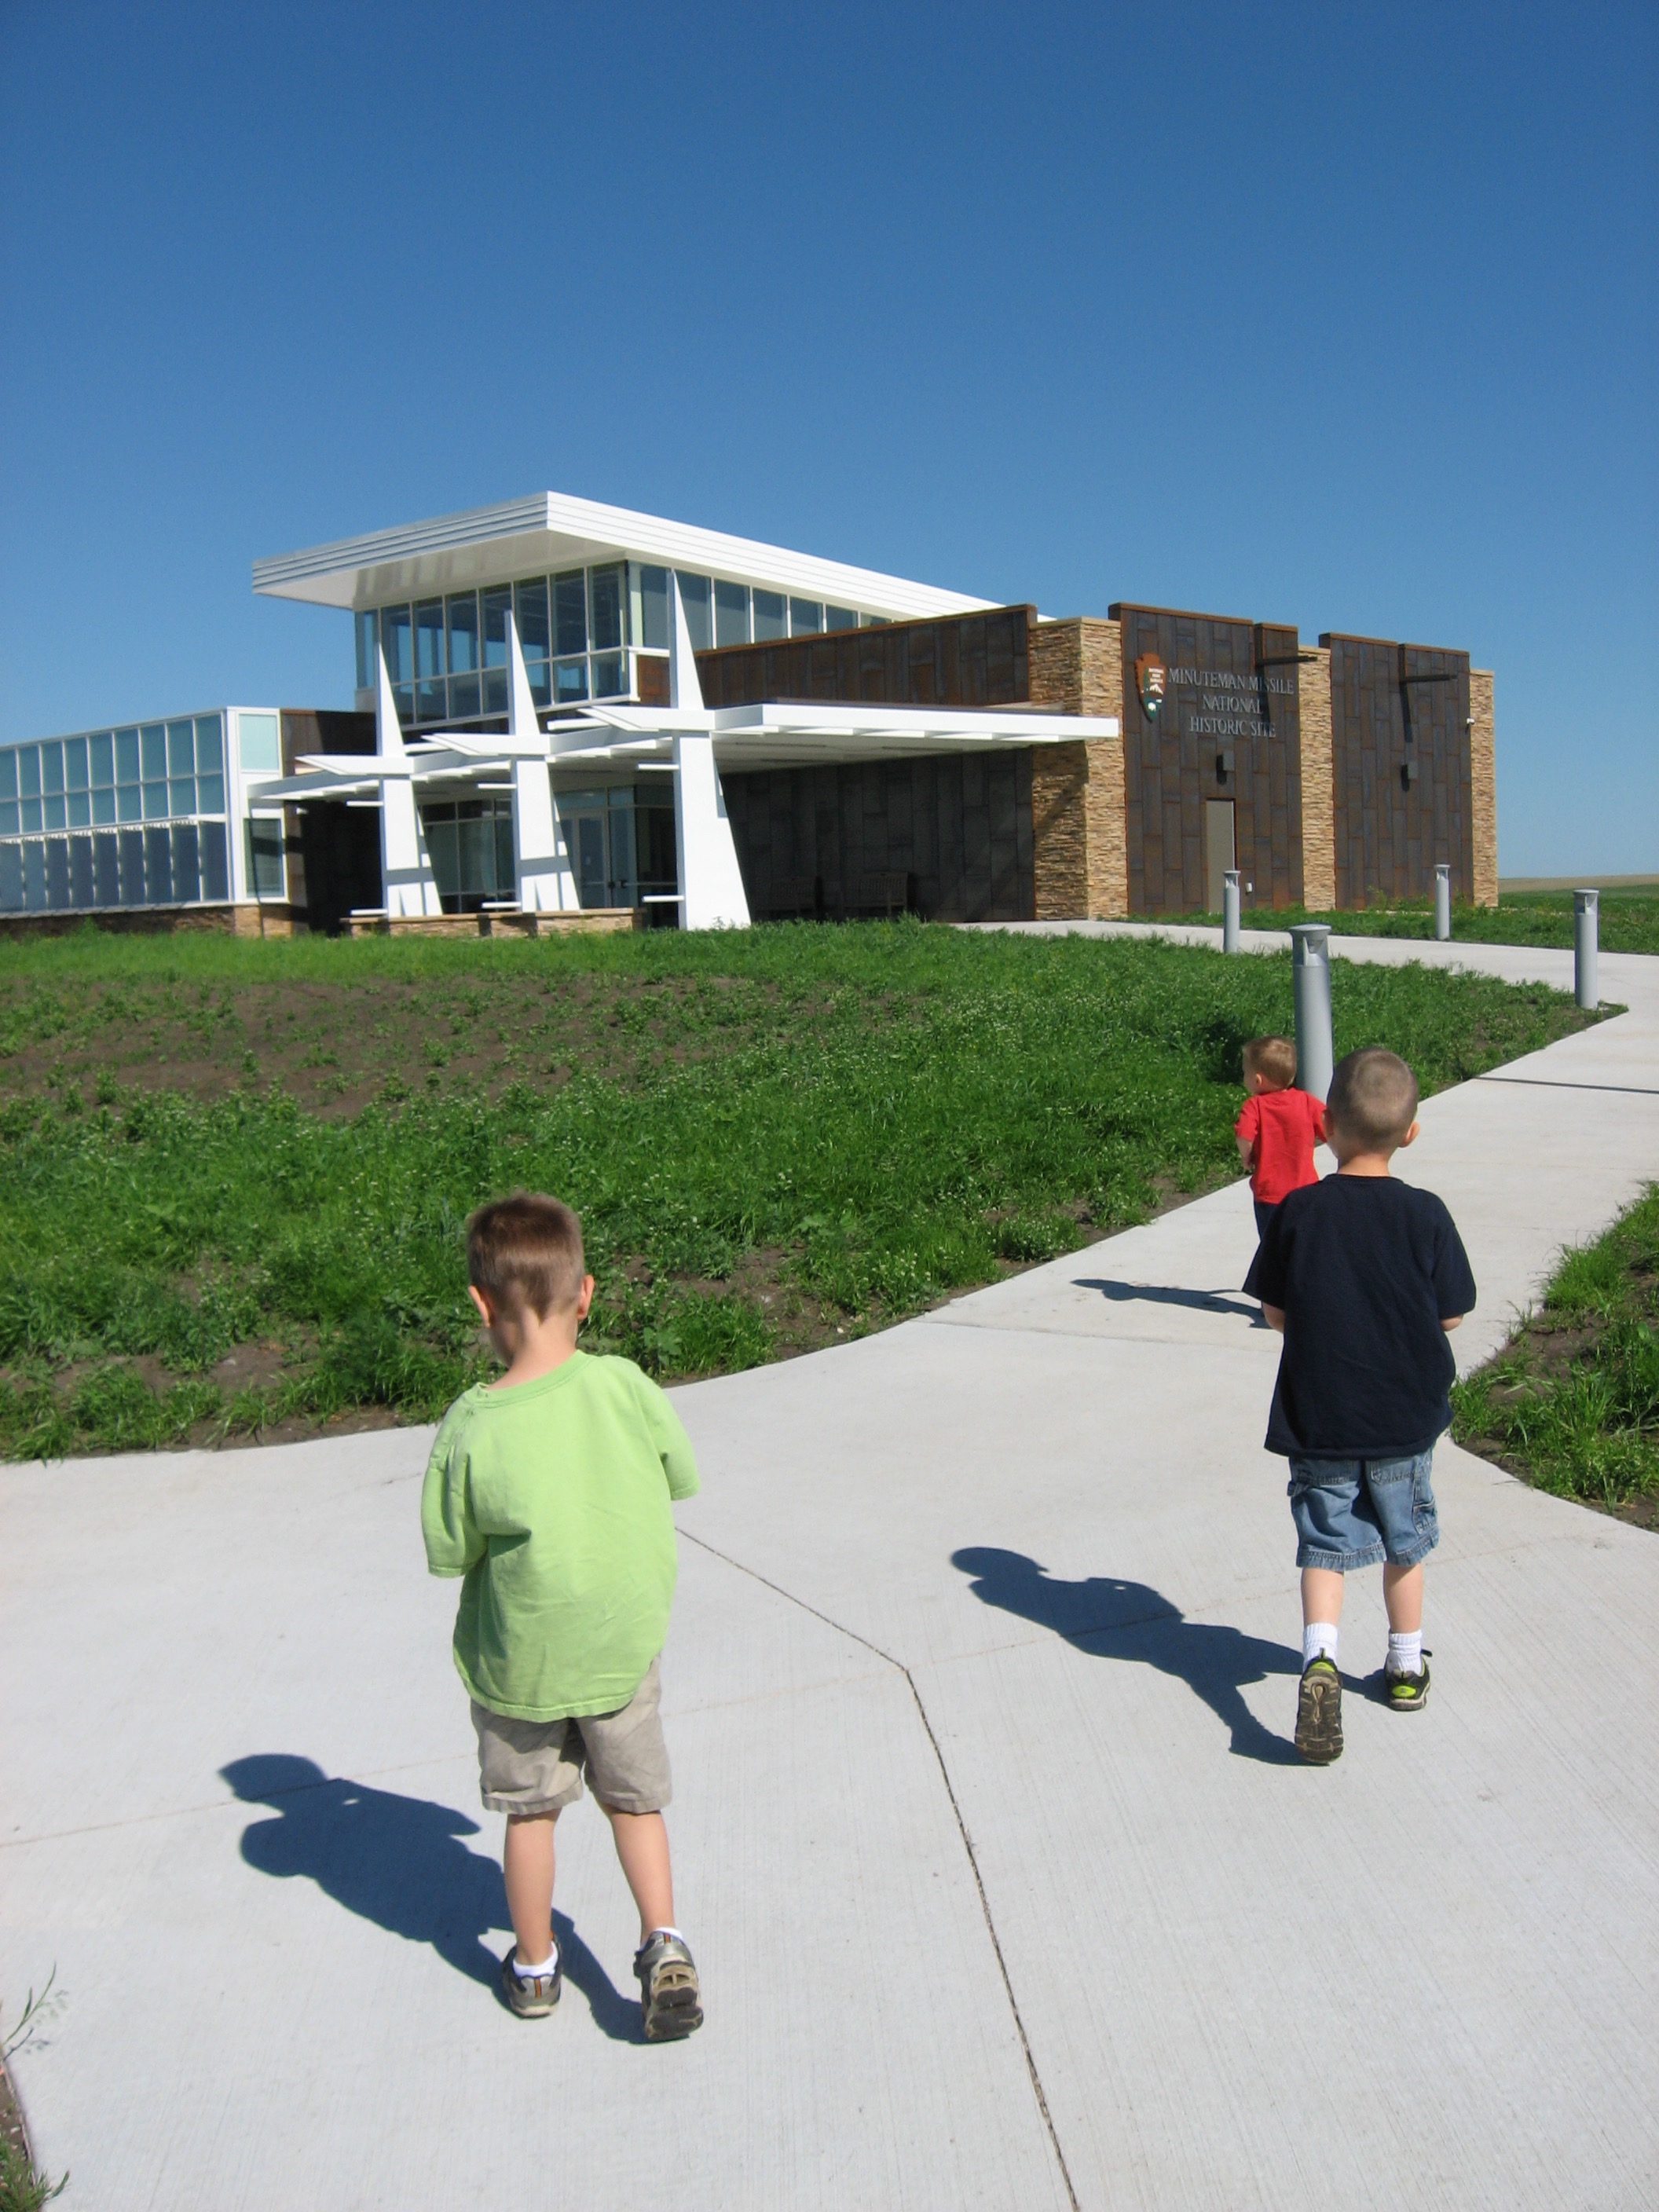 Racing to the Minuteman Missile Visitor Center